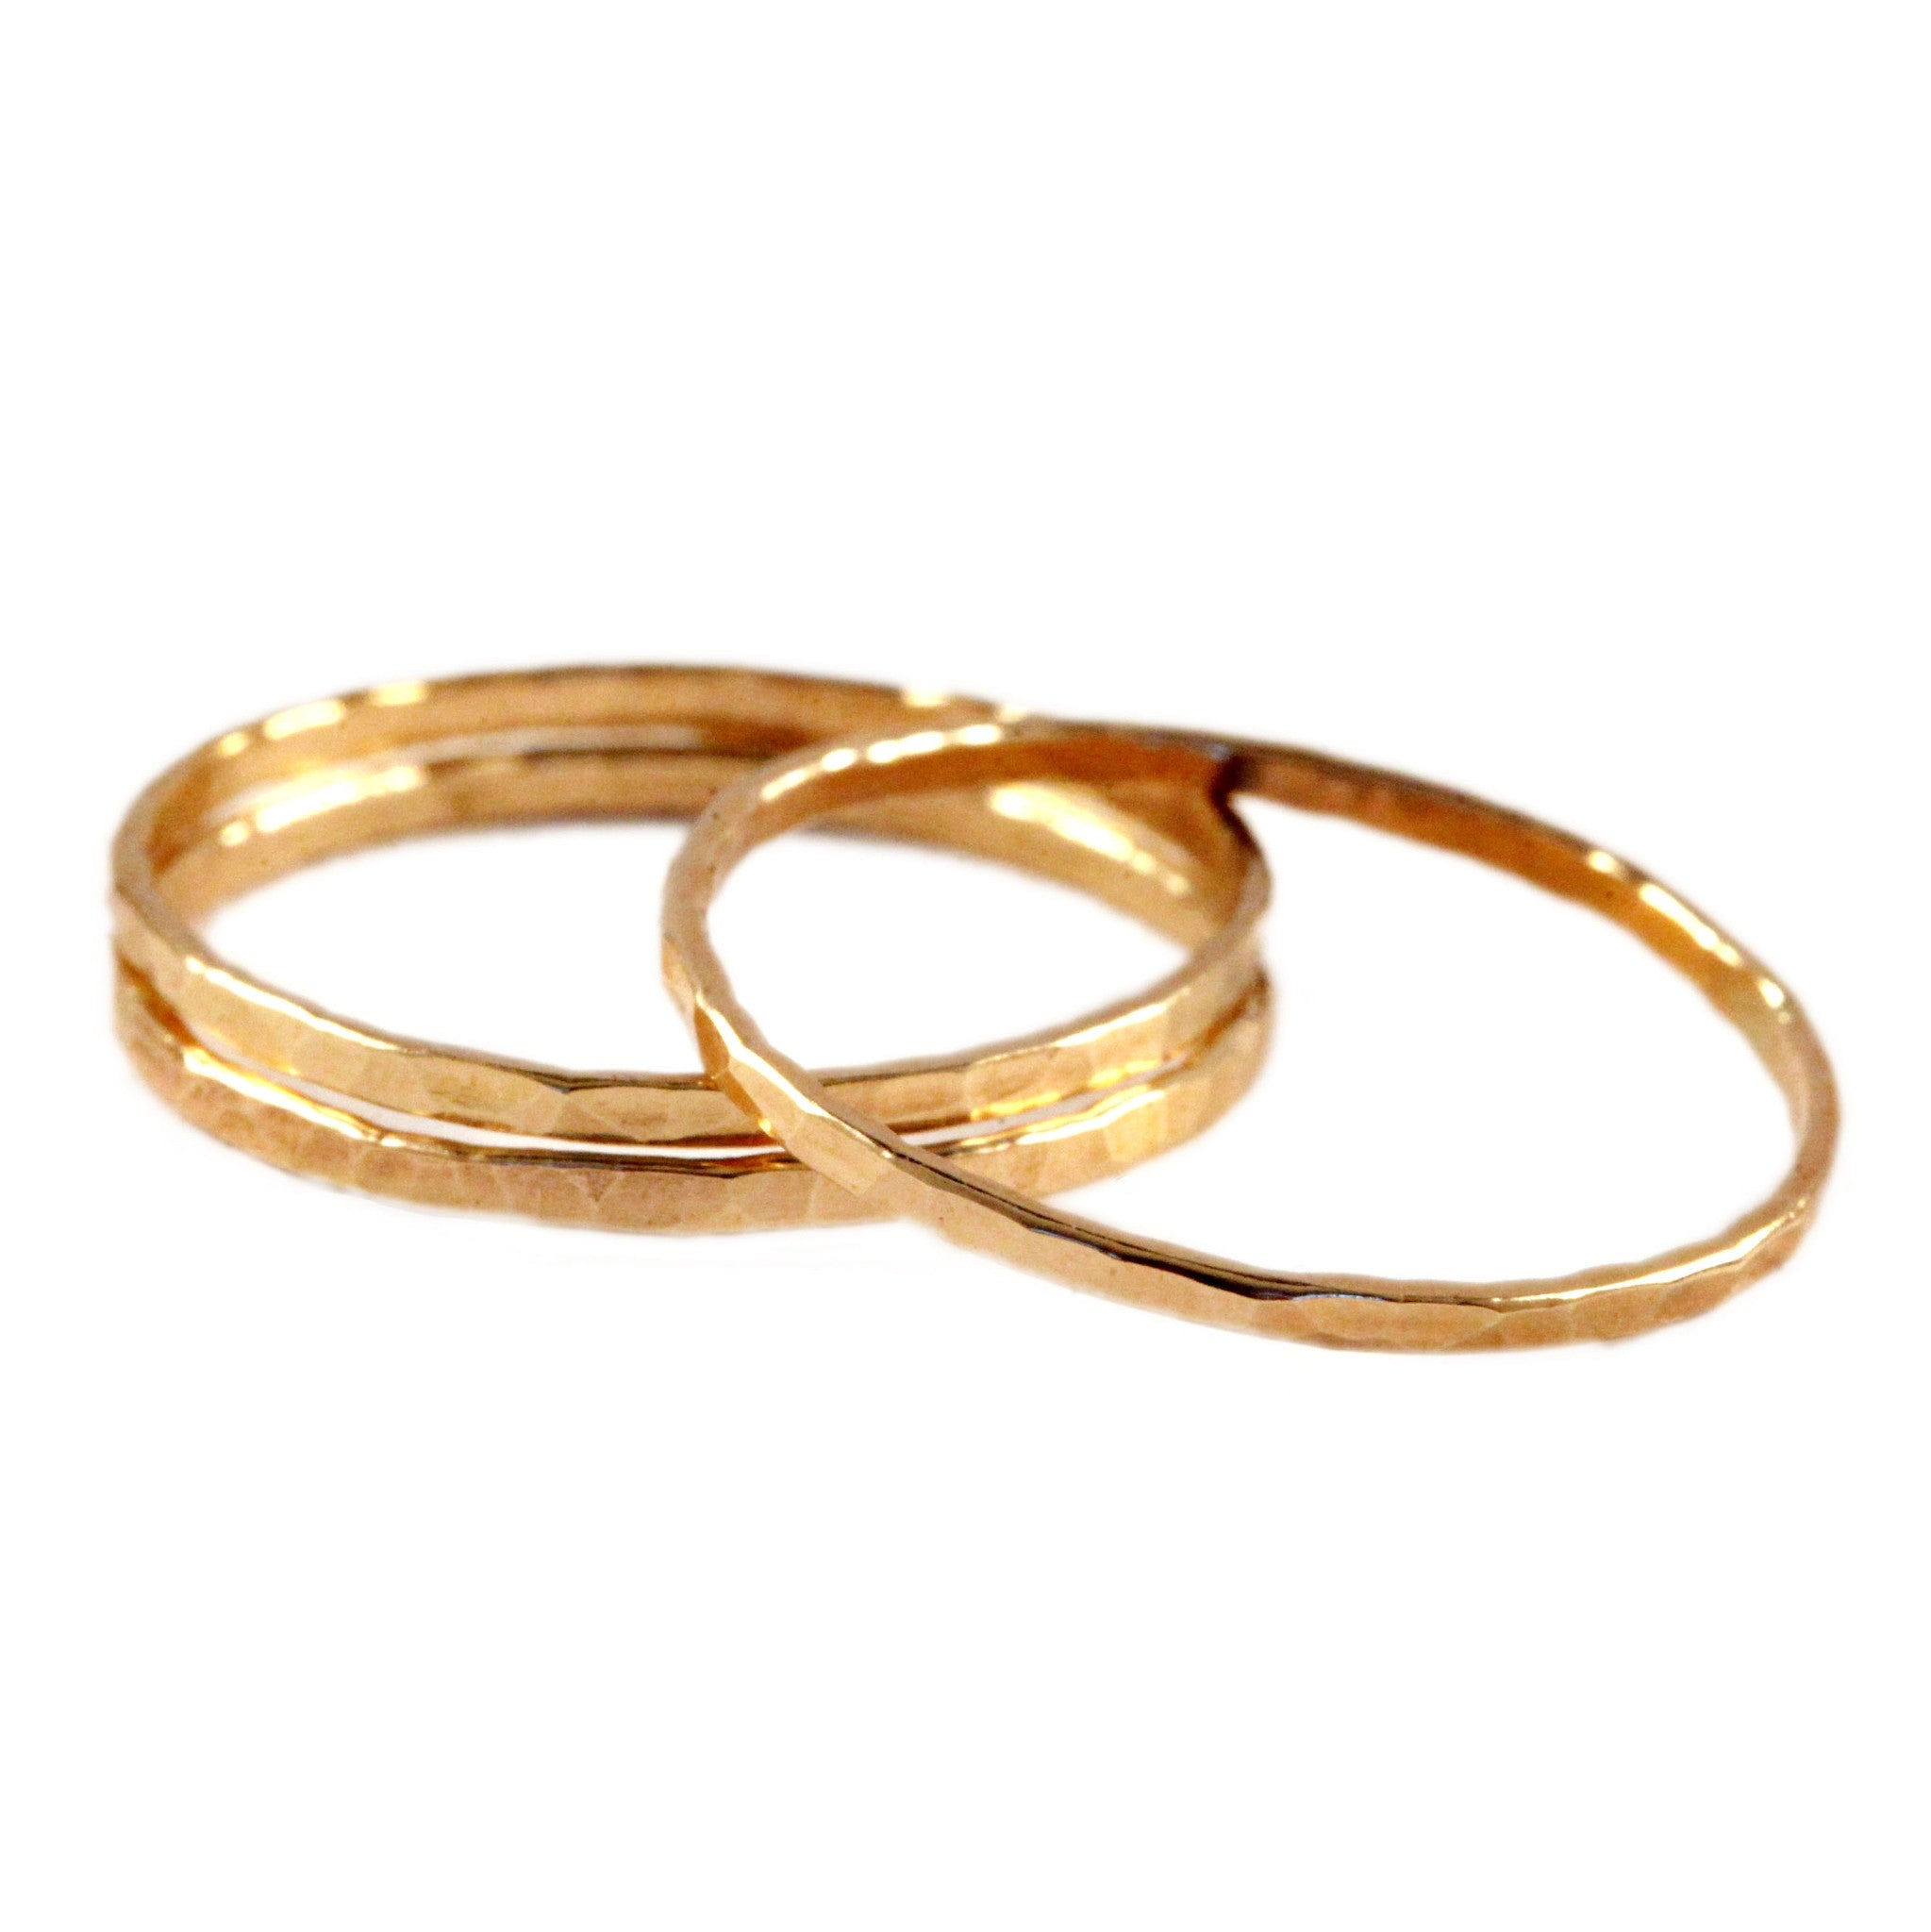 Hammered Gold Fill Stacking Ring - Set of 3